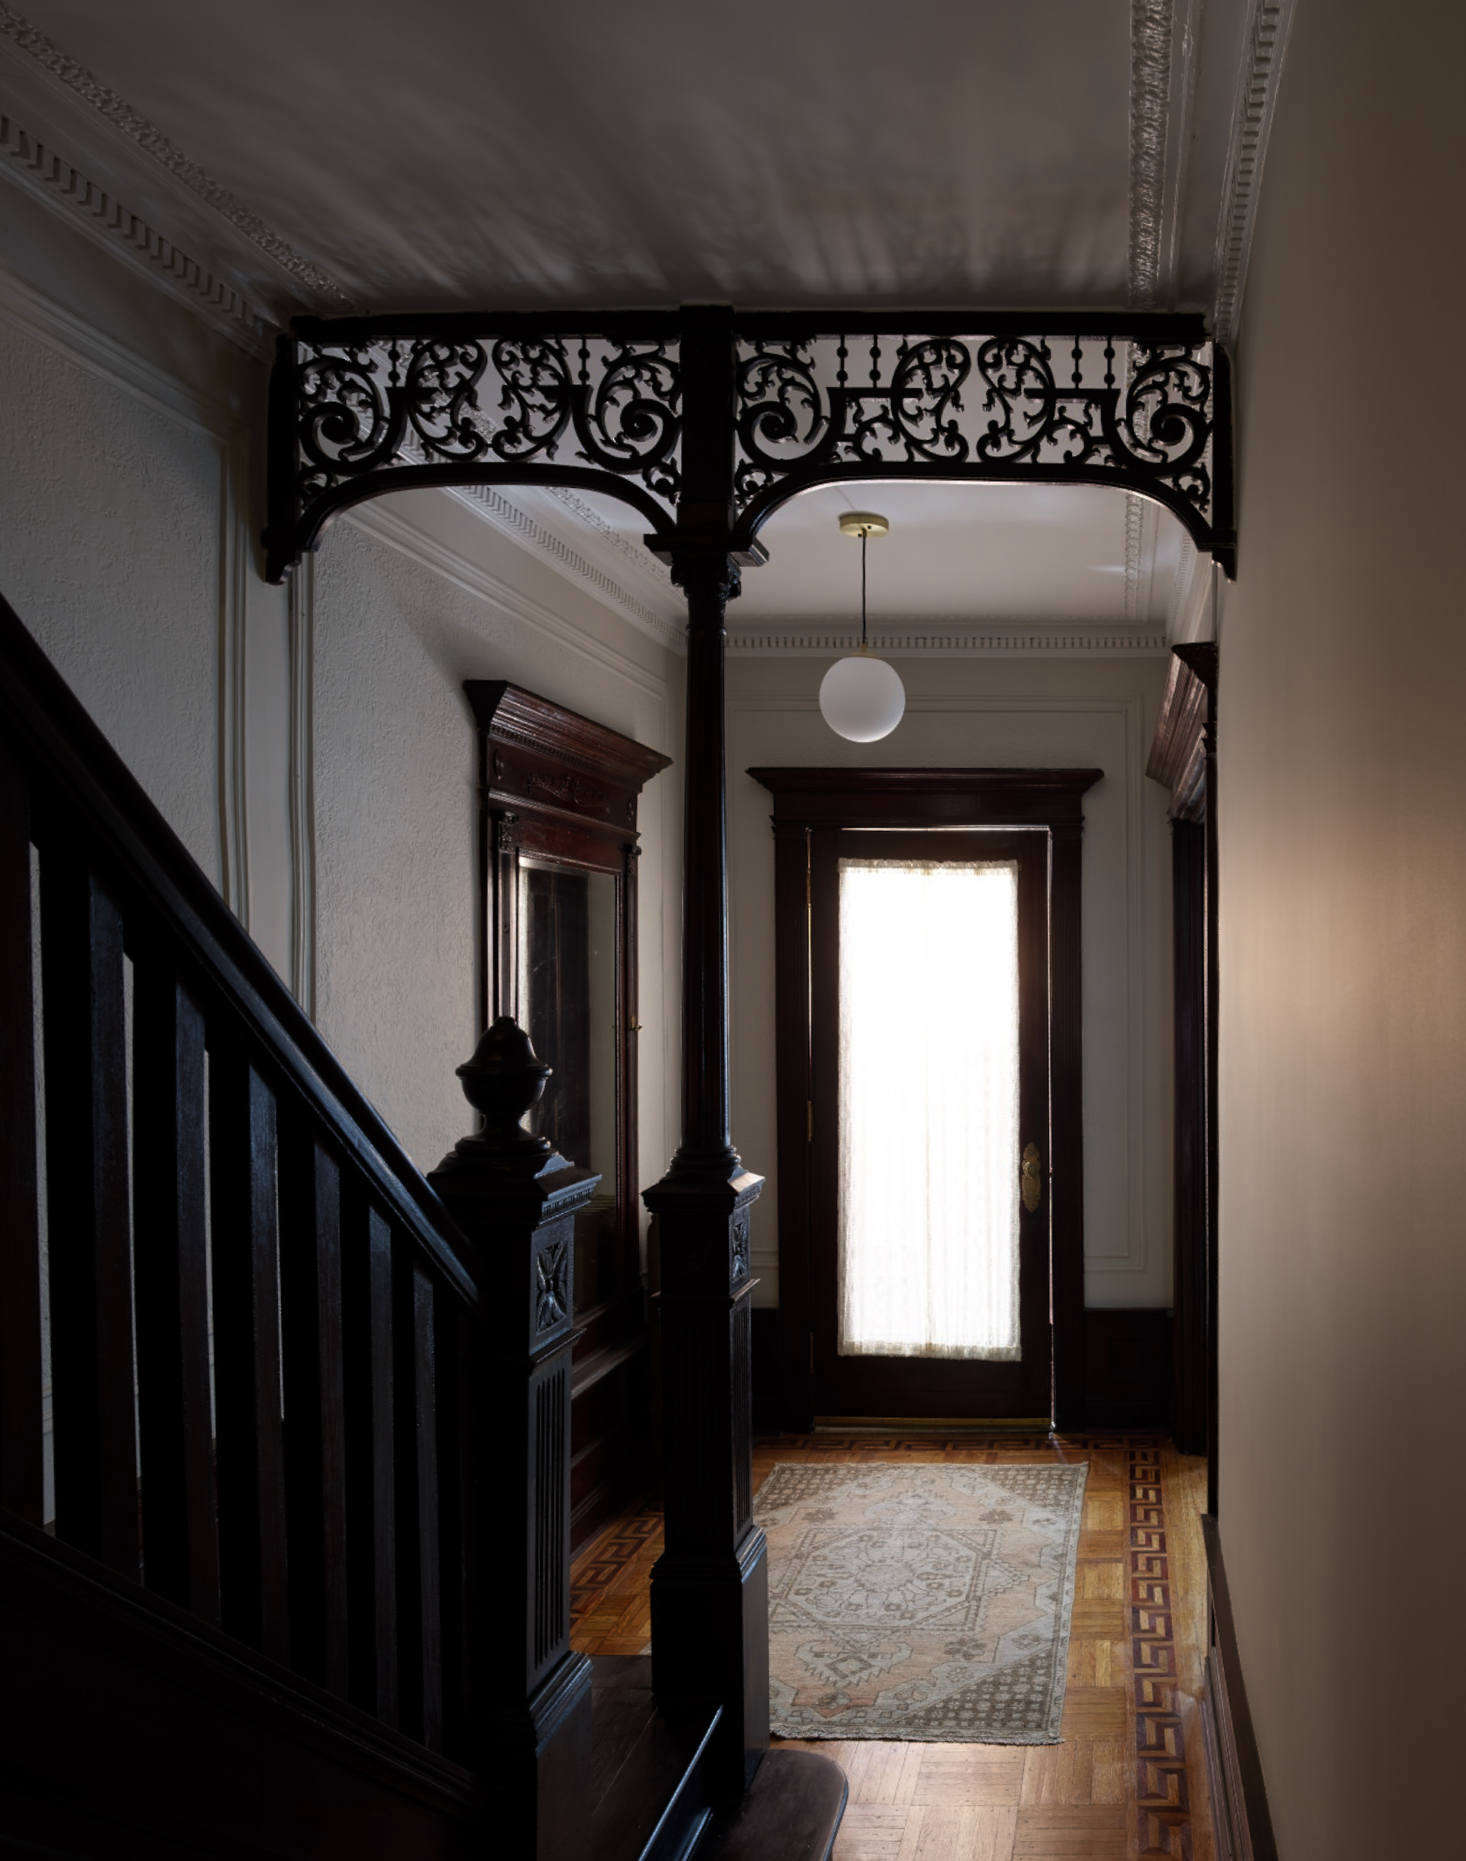 The dramatic first-floor hallway, with elaborate moldings preserved, sets the stage for the rest of the house.